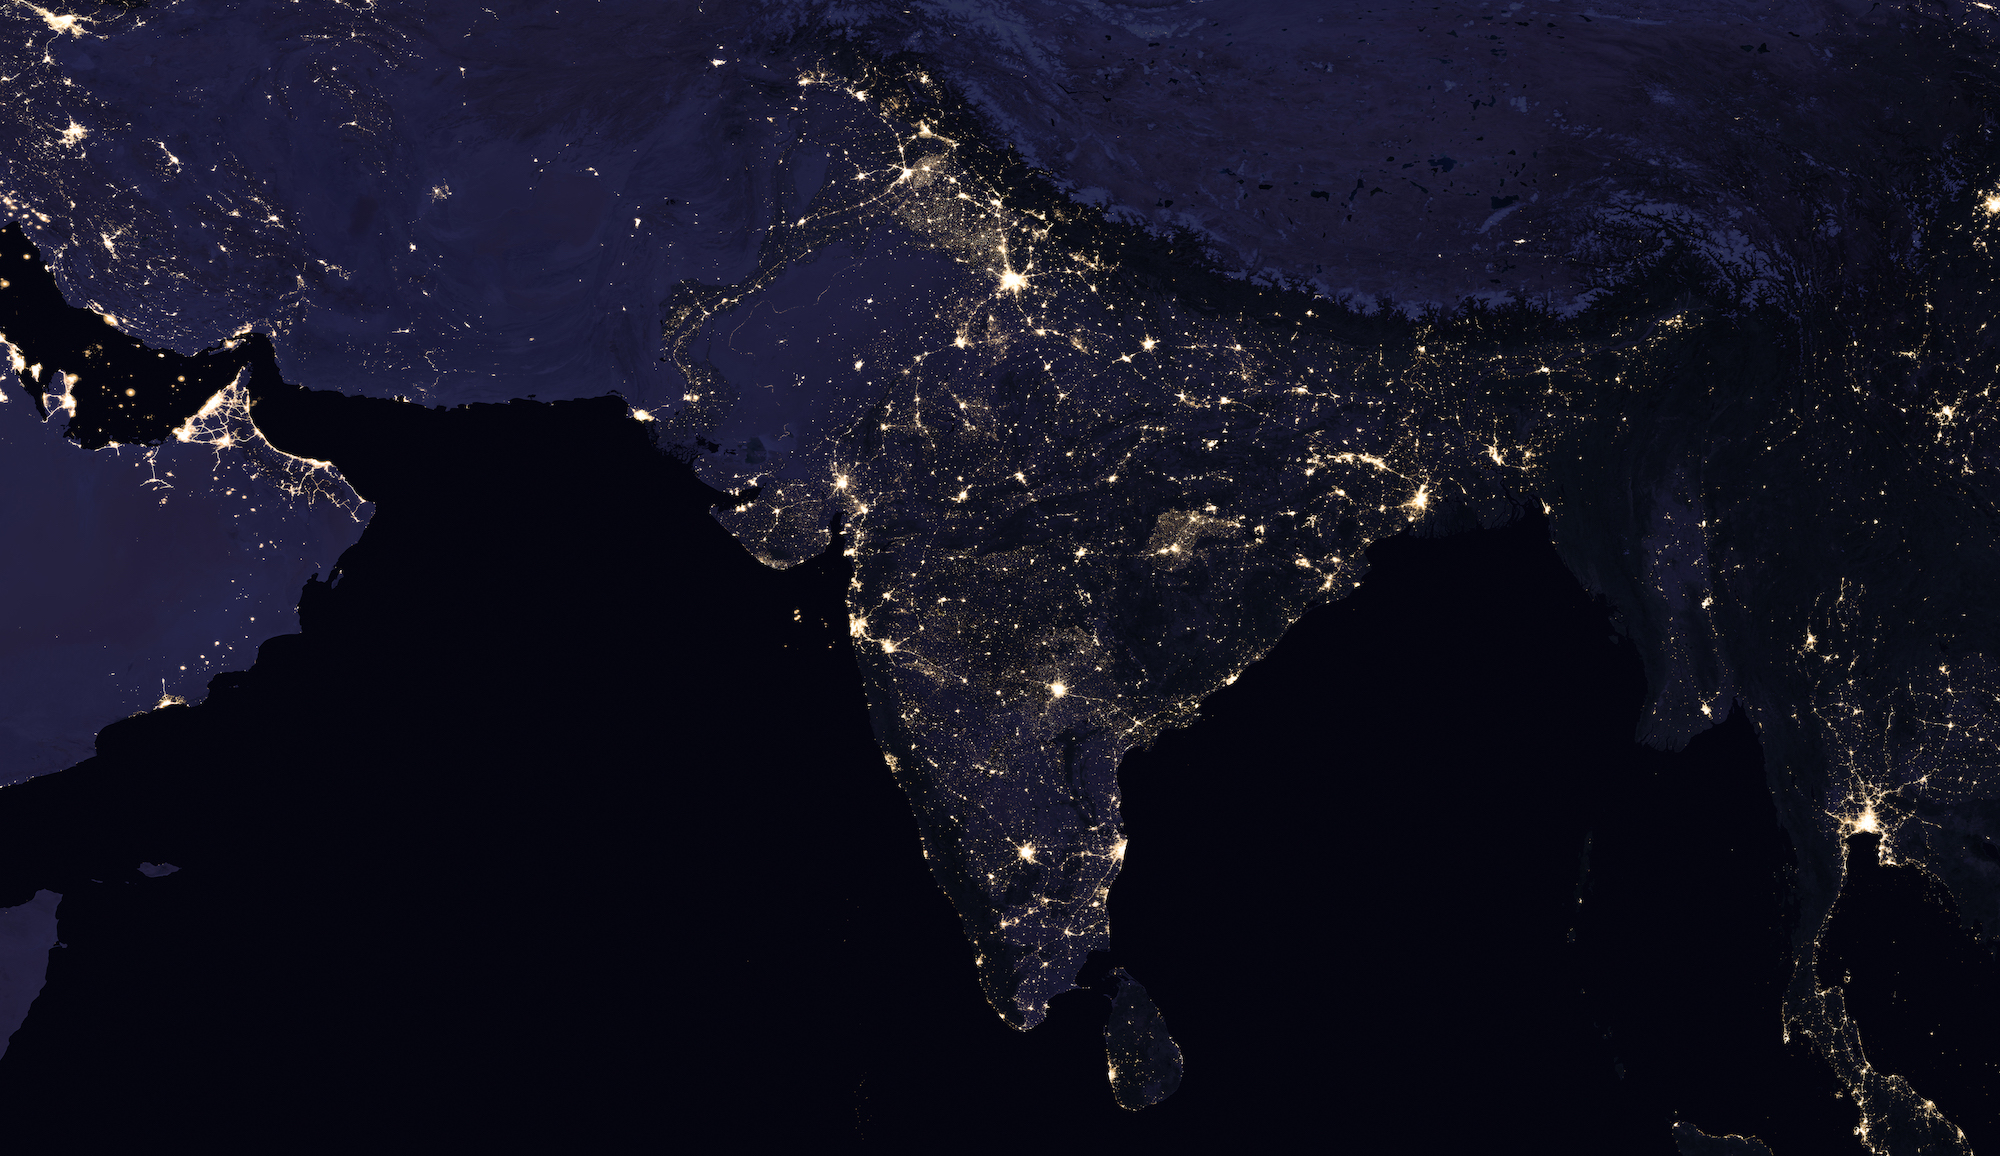 nasa-night-satellite-02-india-2012